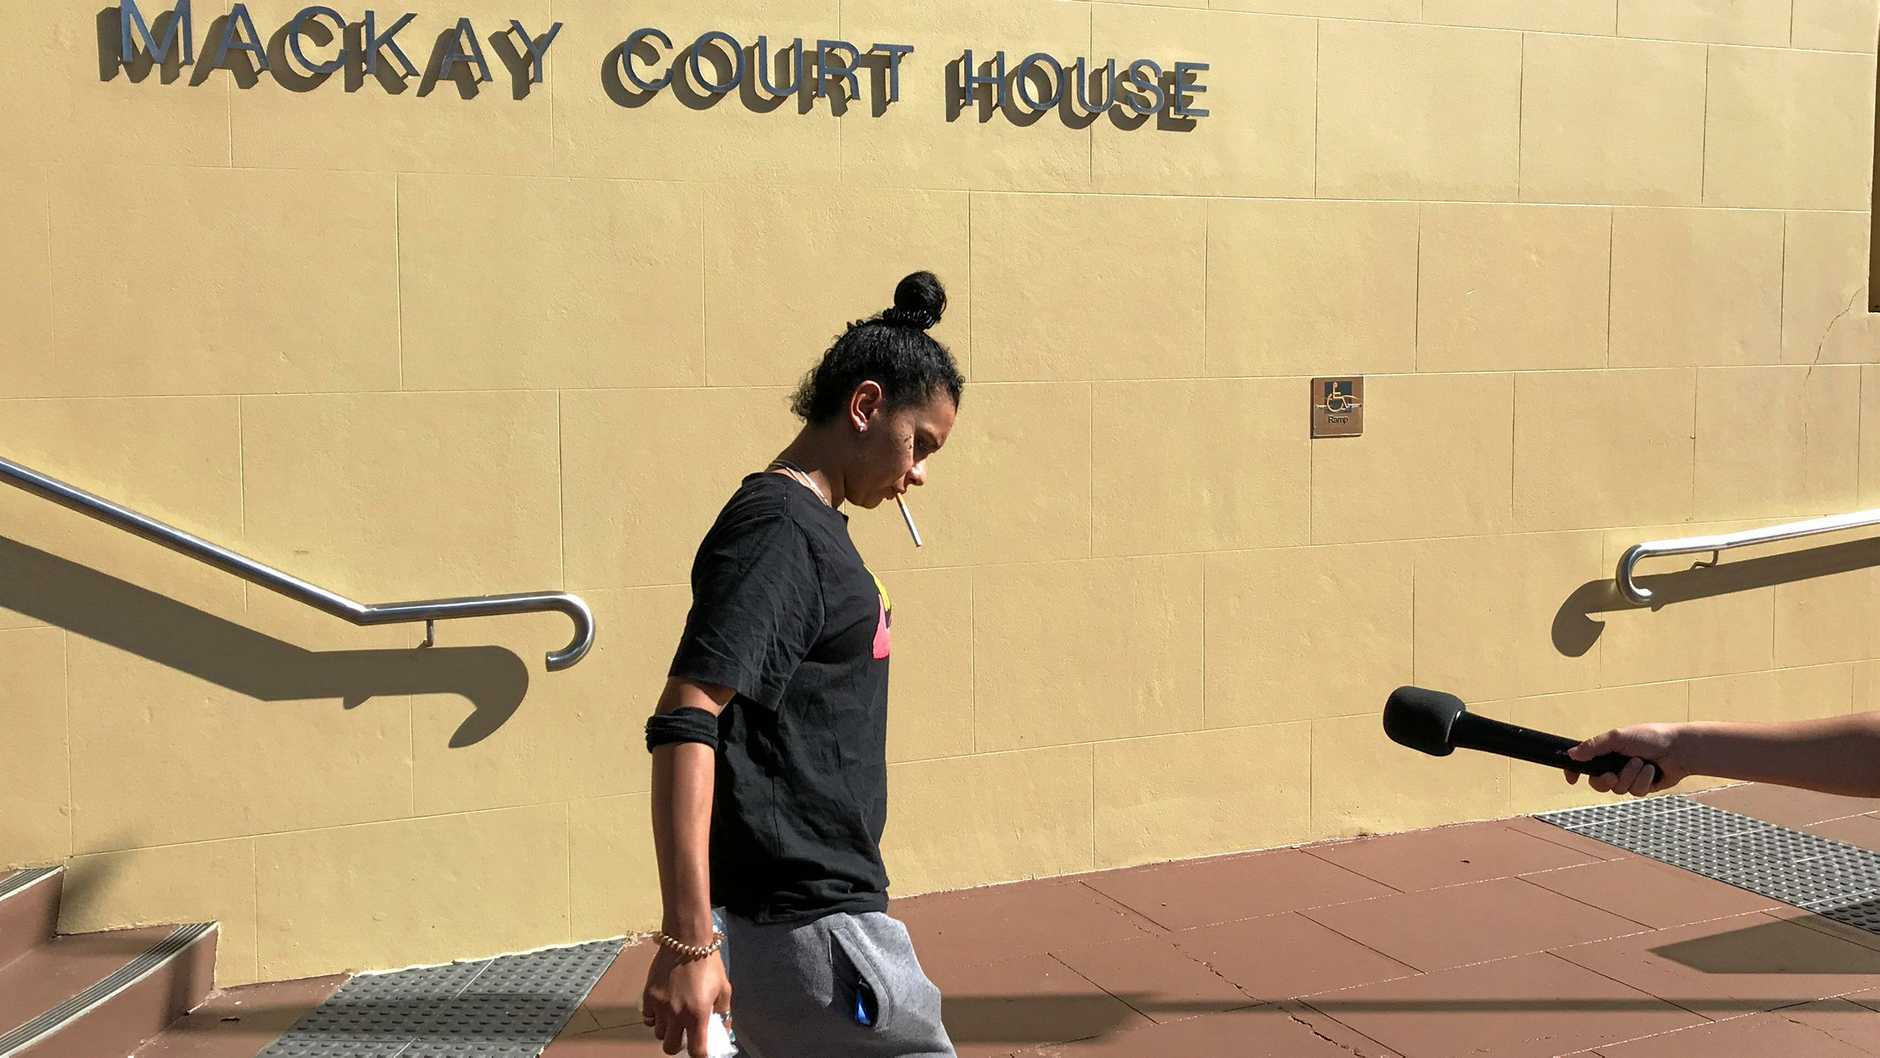 Melita Kissier, who was arrested after ignoring a coronial direction, leaves Mackay courthouse after giving evidence in the Shandee Blackburn inquest.